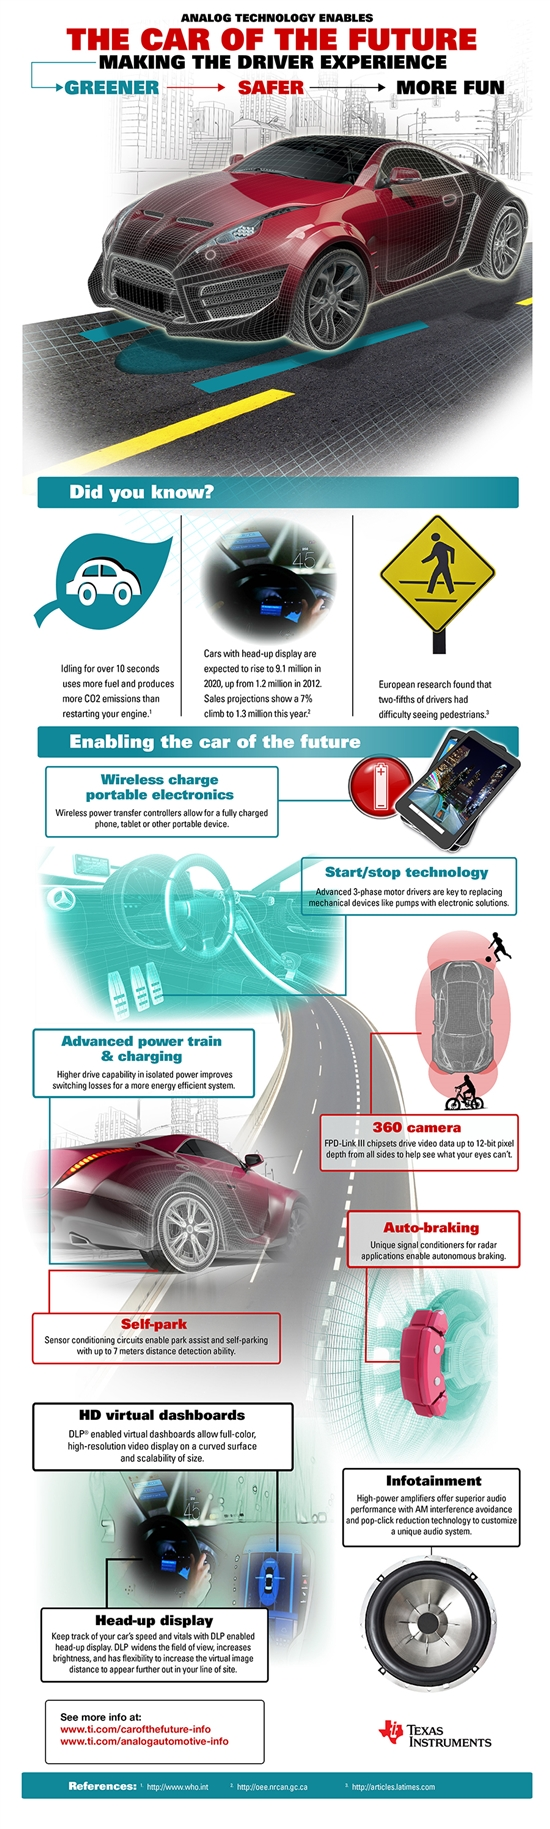 Analog technology enables the car of the future